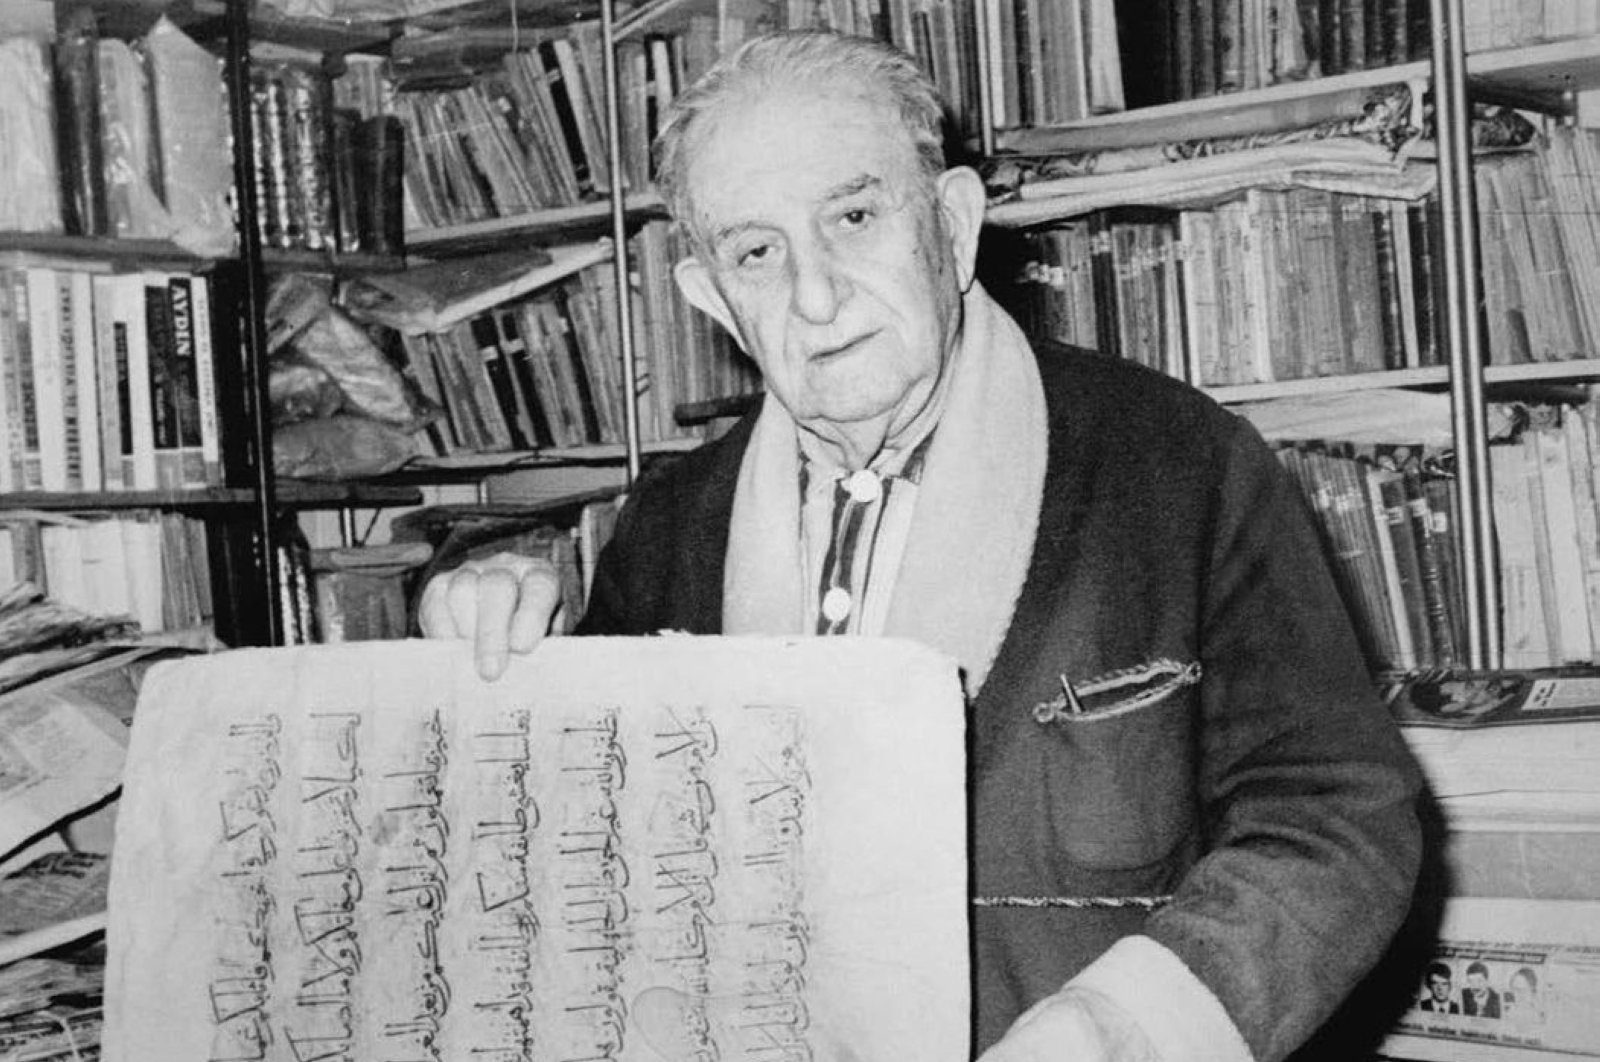 In this undated file photo, Ibrahim Hakkı Konyalı is seen with a document in a library.